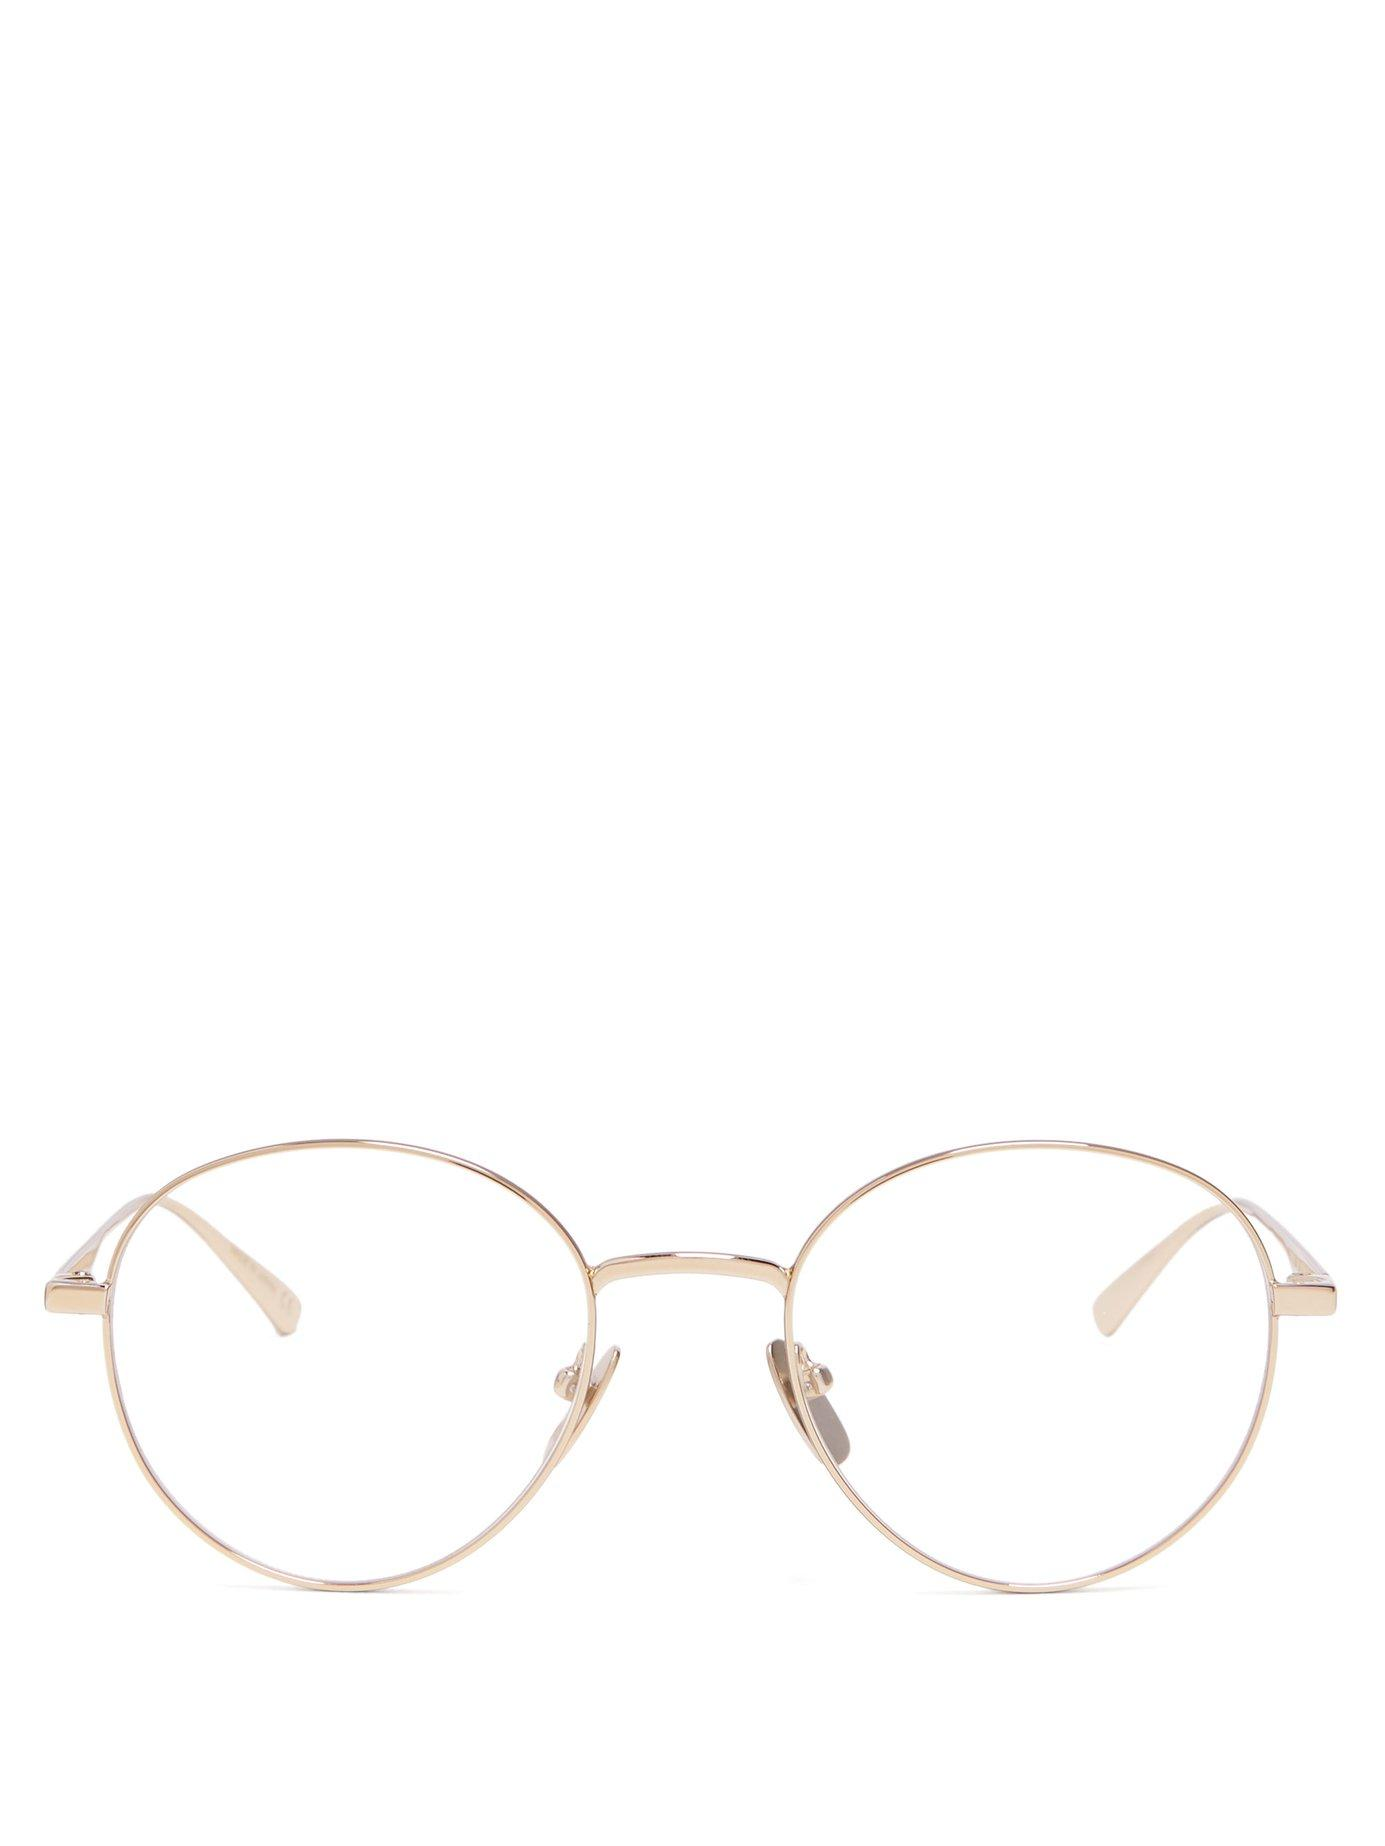 a2778d63ab9 Gucci - Round Metal Glasses - Mens - Gold